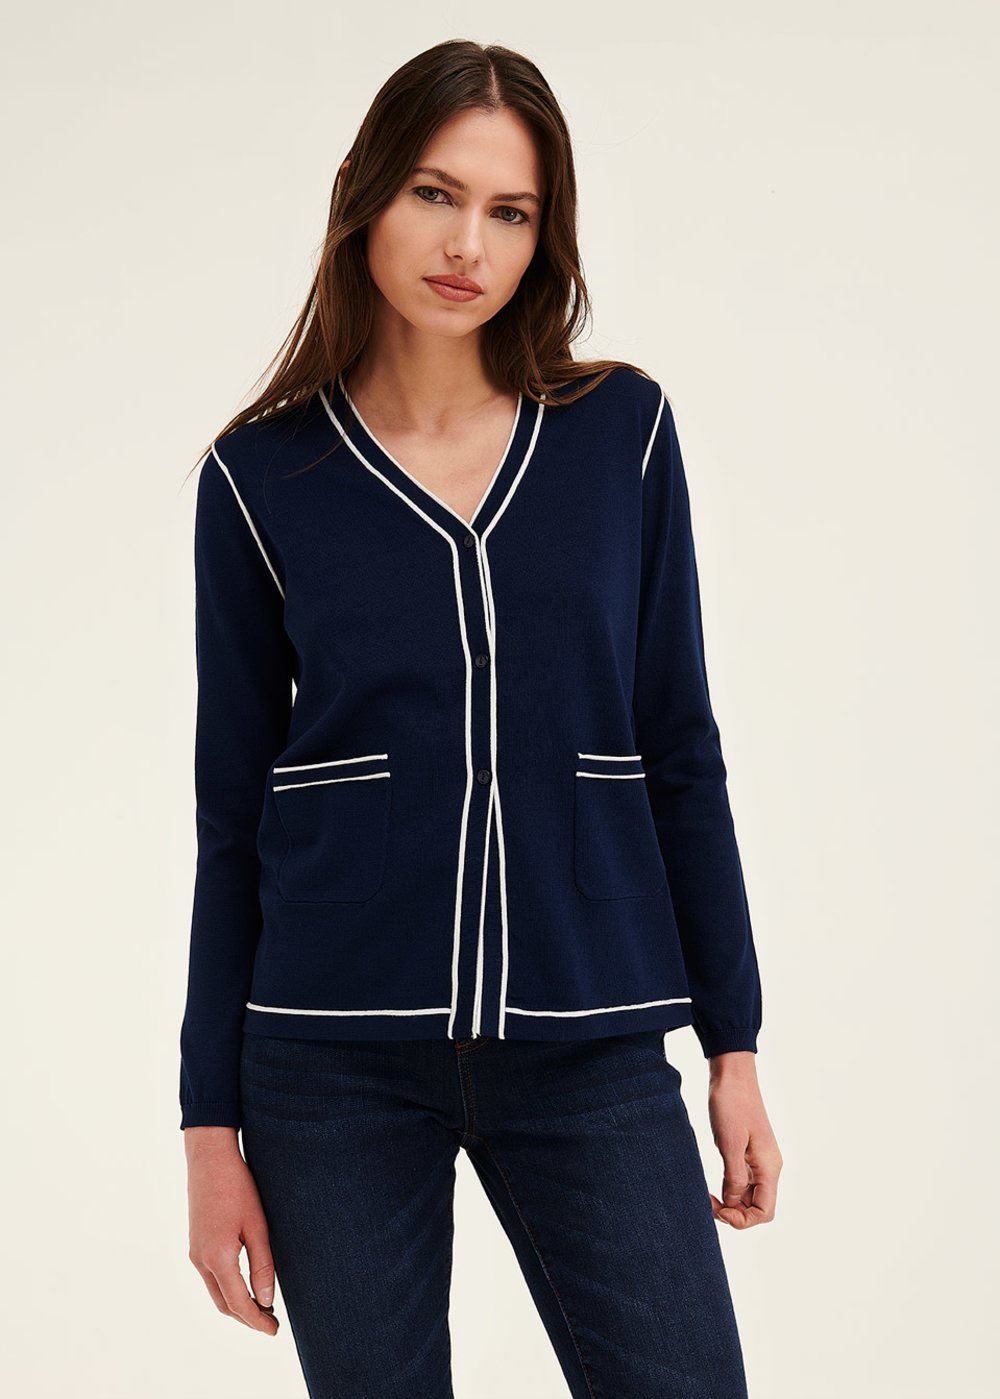 Clio cardigan with contrasting trim - Oltremare\ White - Woman